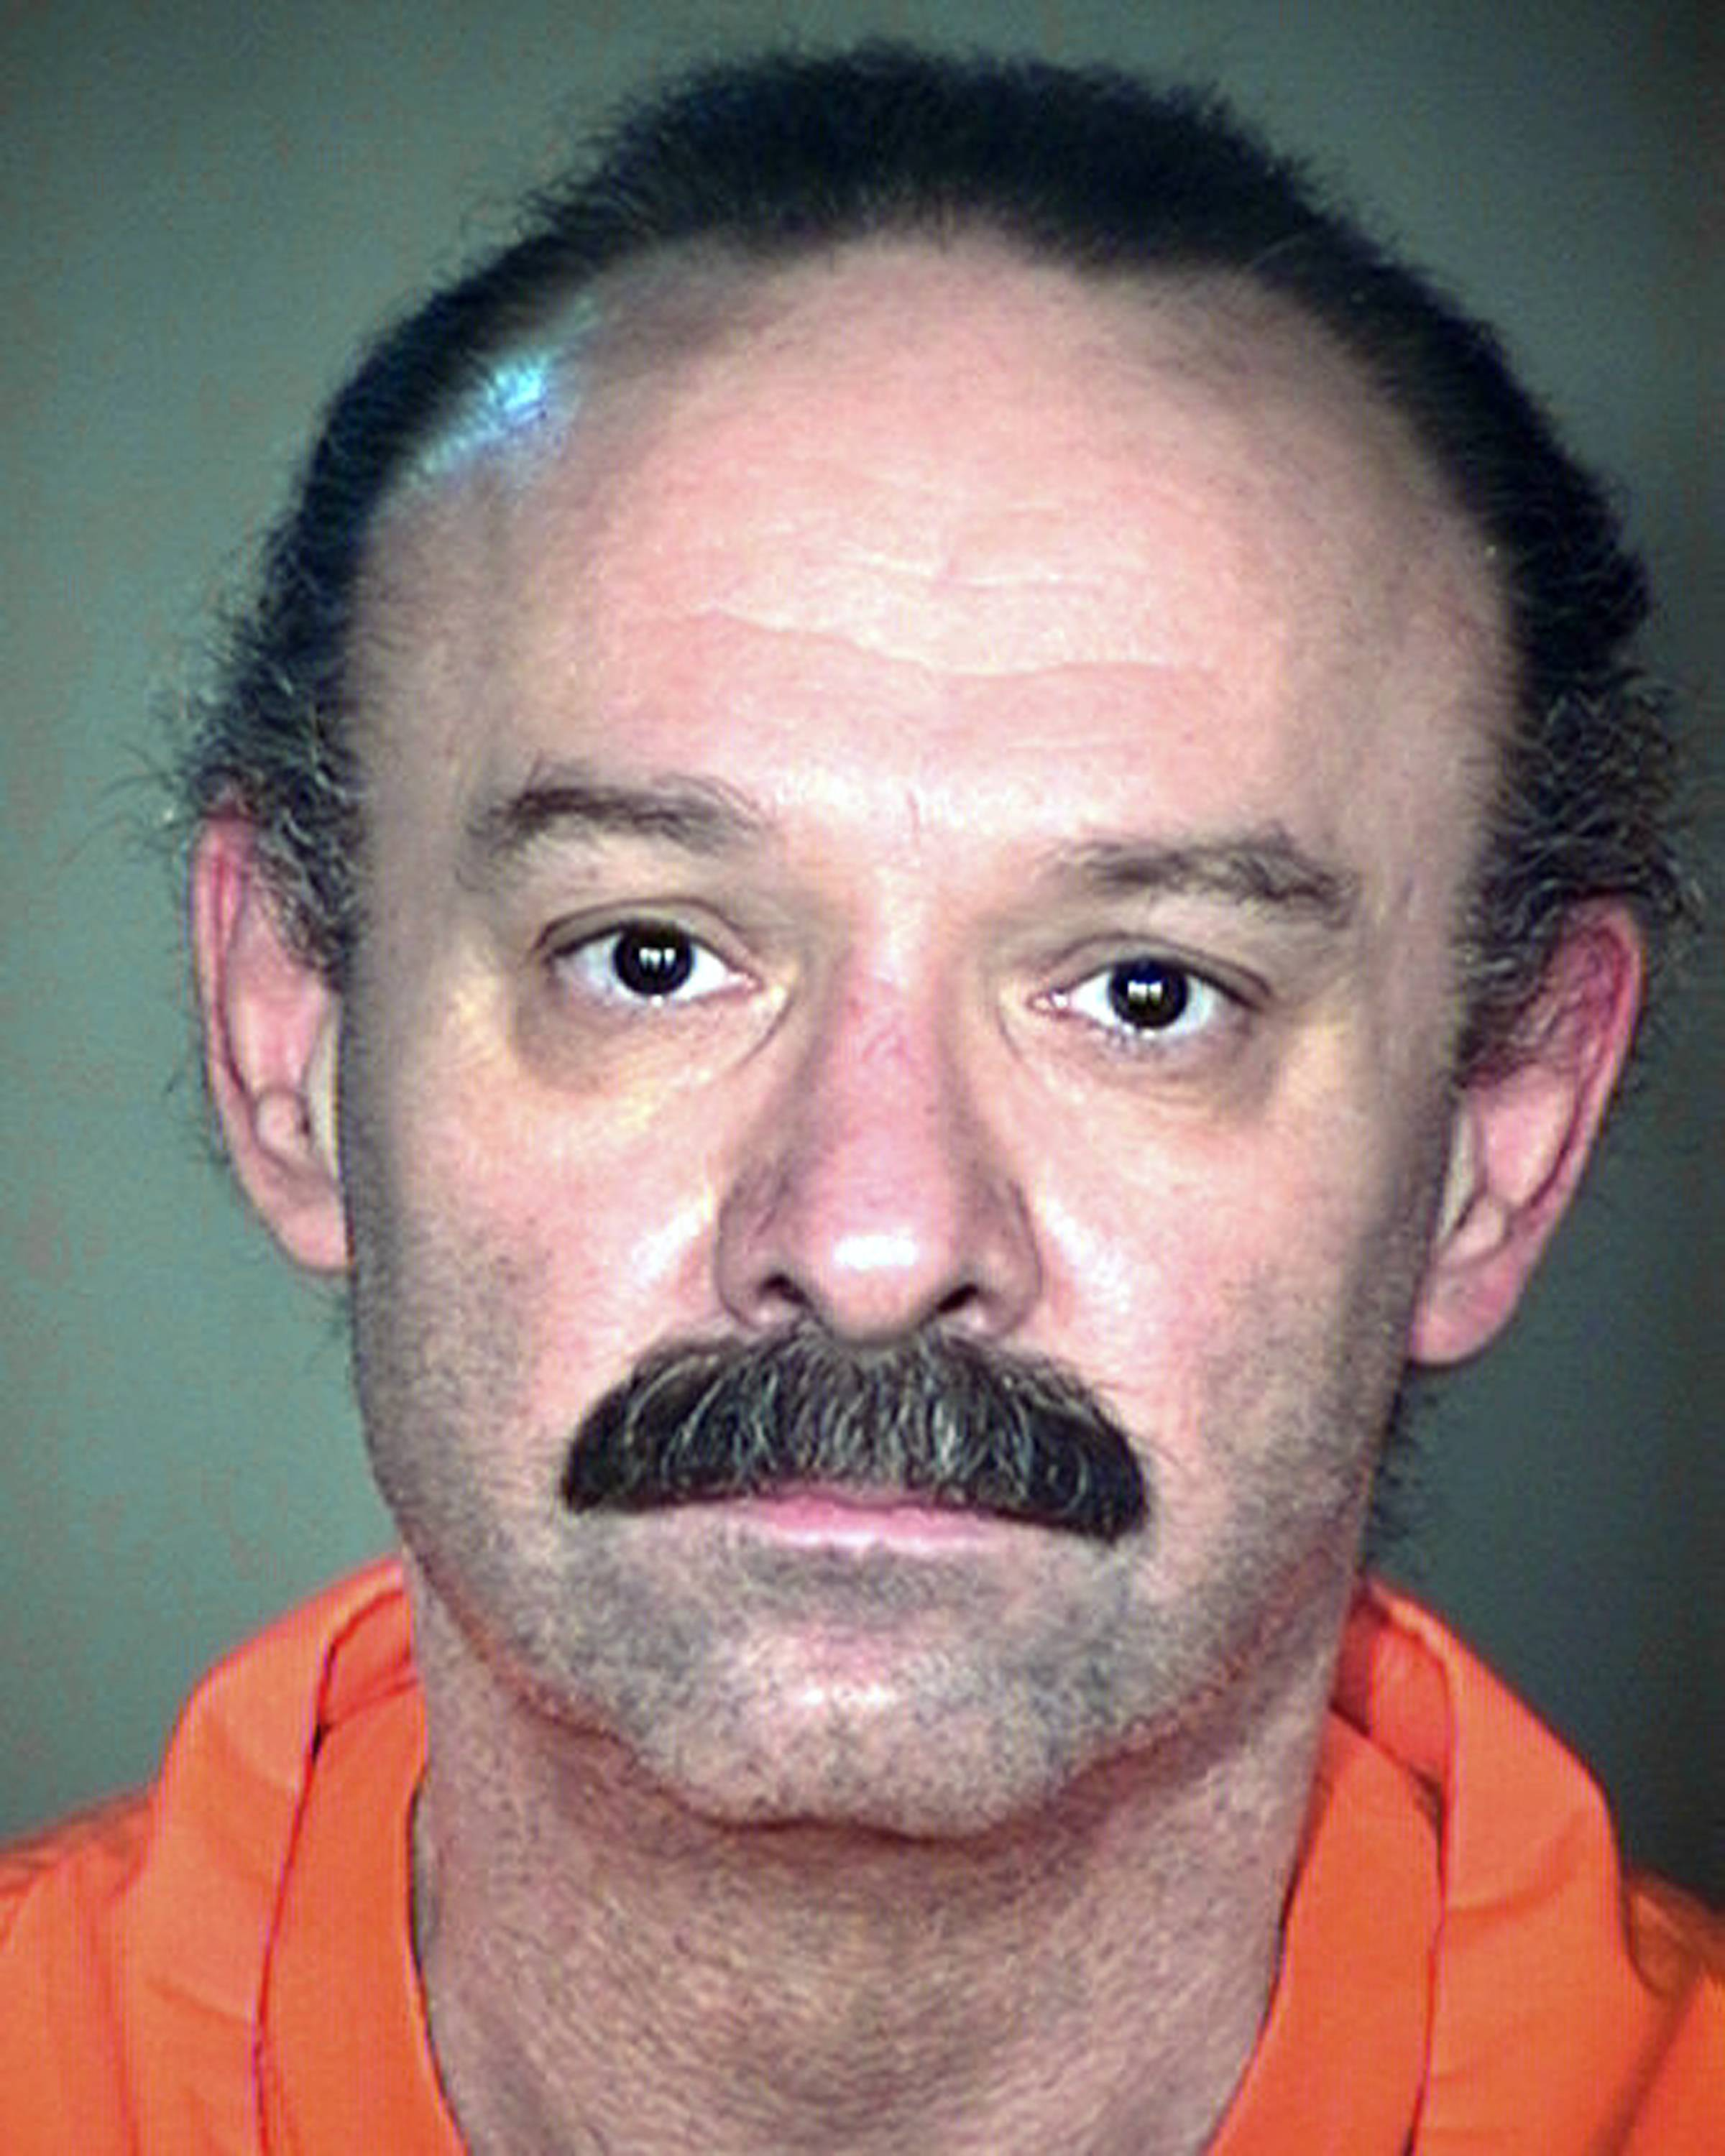 Arizong death-row inmate Joseph Rudolph Wood.